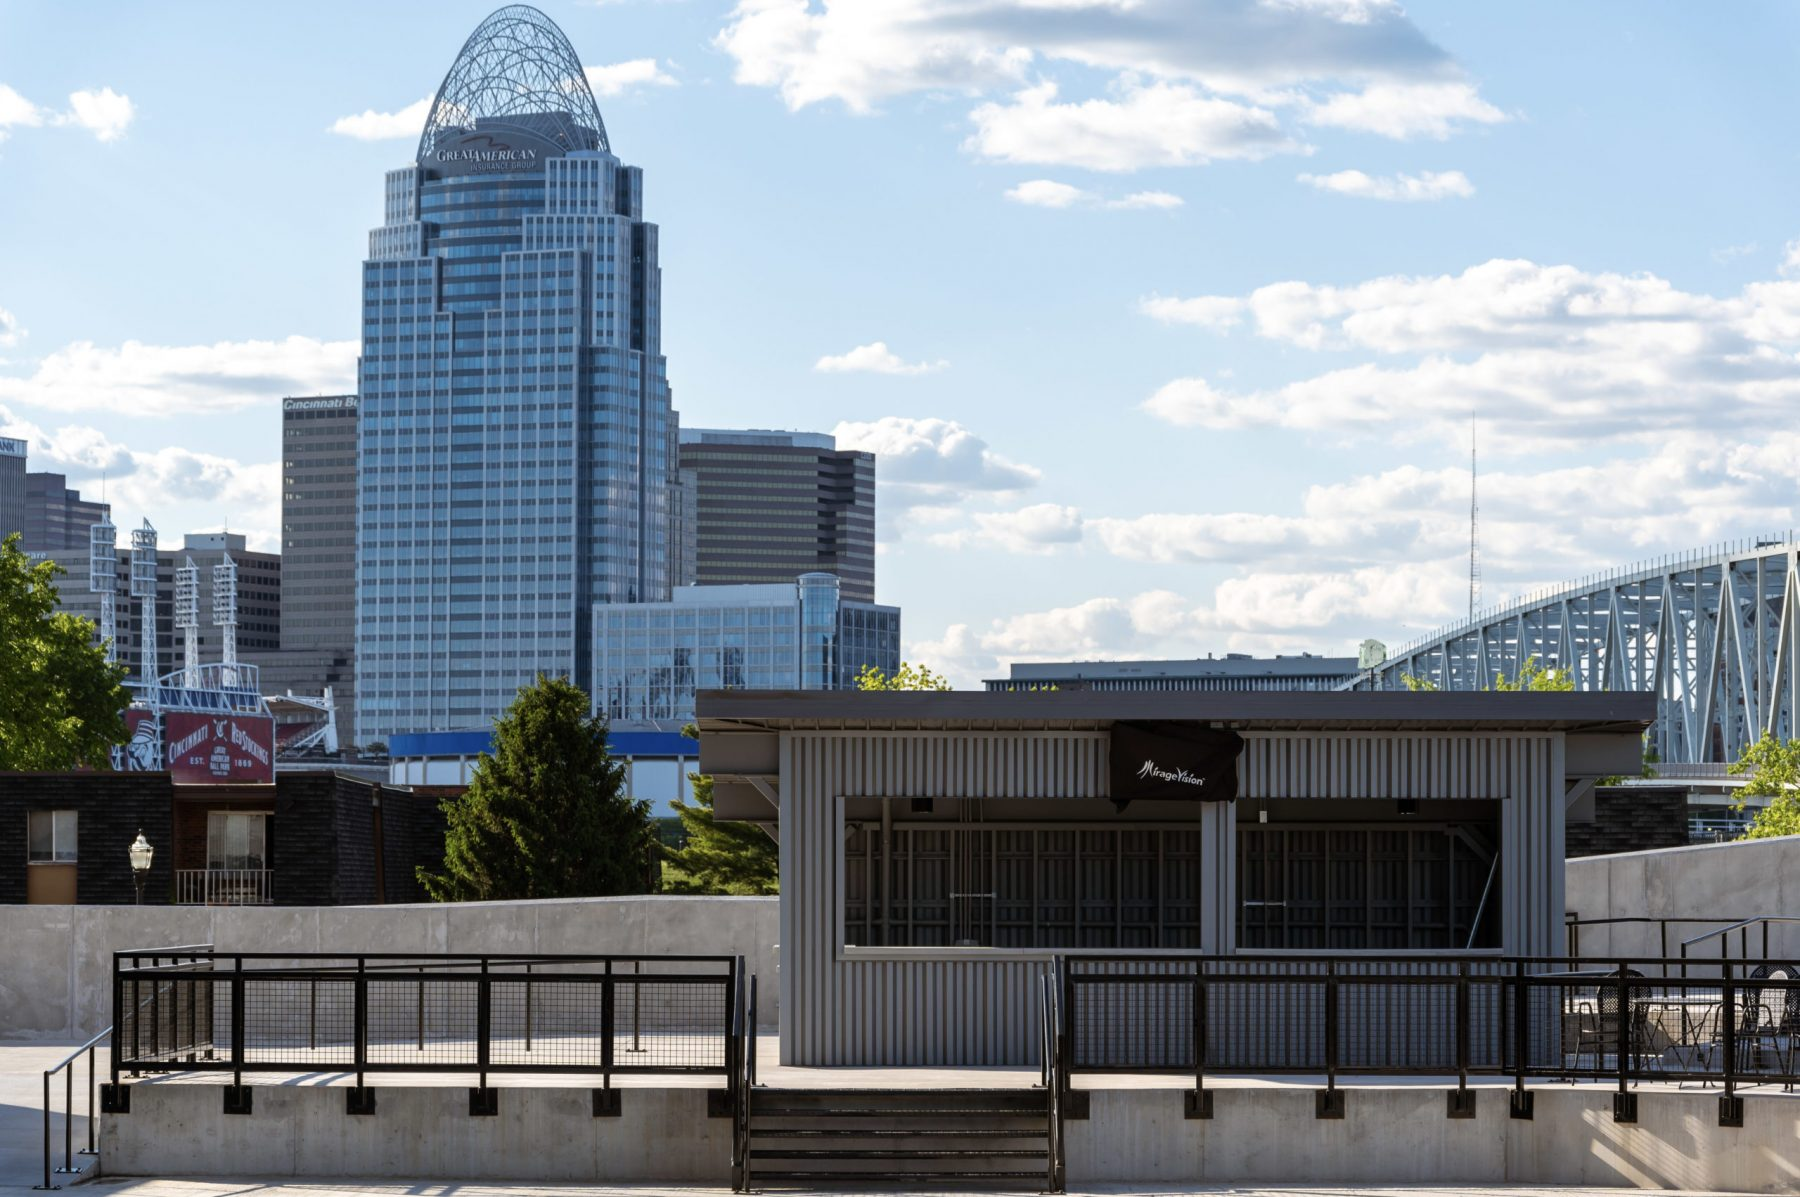 Downtown Cincinnati can be admired from the outdoor ampitheater. Photo by Phil Armstrong.